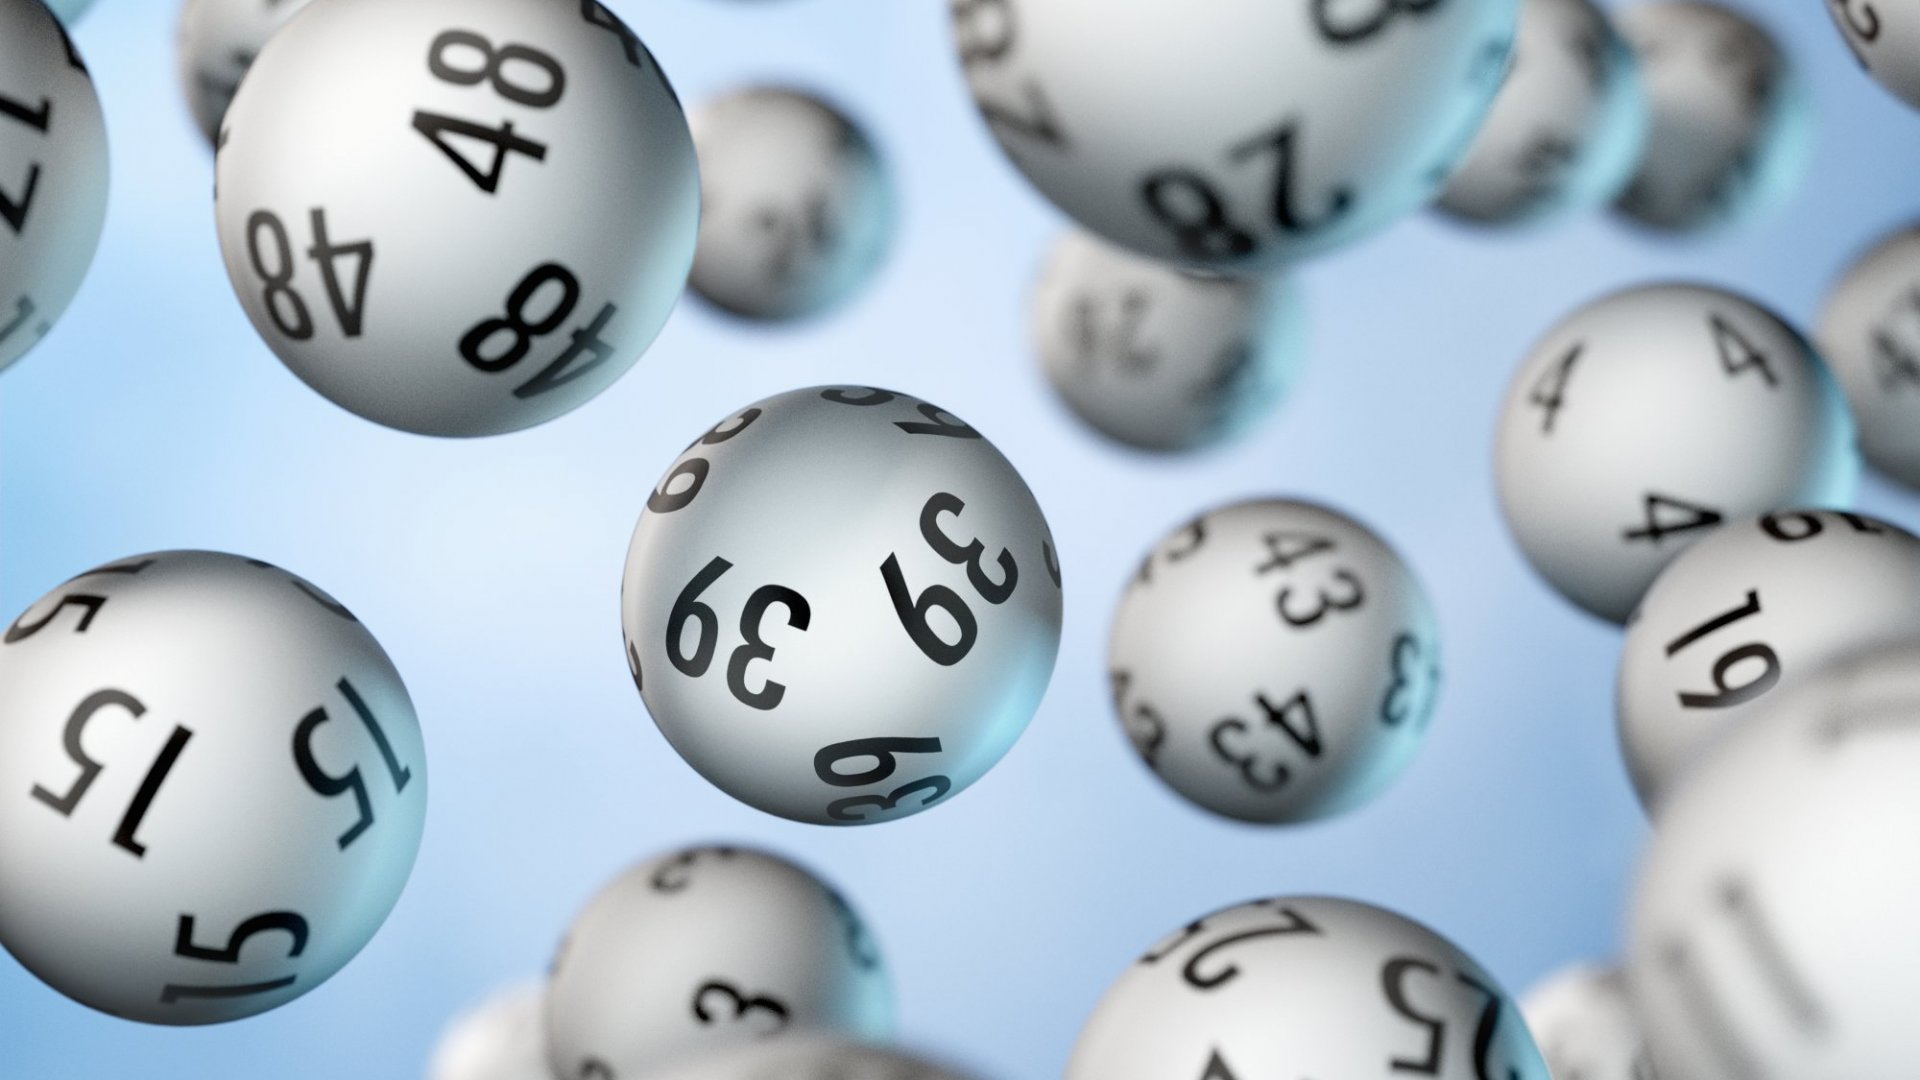 Sold Your Small Business? Let These Swedish Lottery Winners Show You What to Do Next